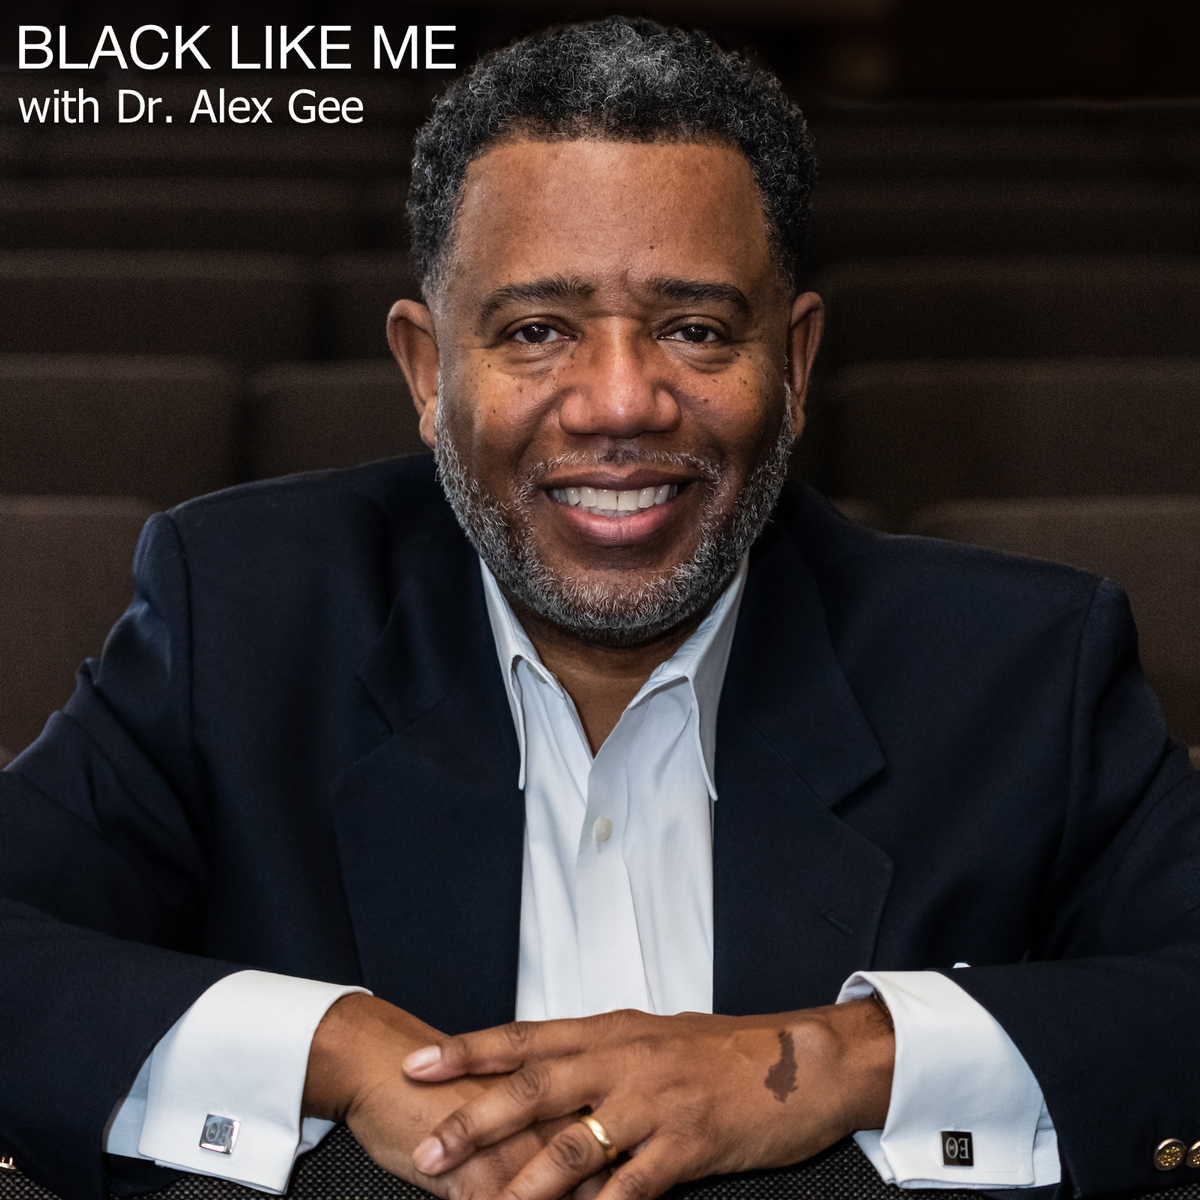 """""""Black Like Me"""" podcast cover photo featuring Alex Gee"""